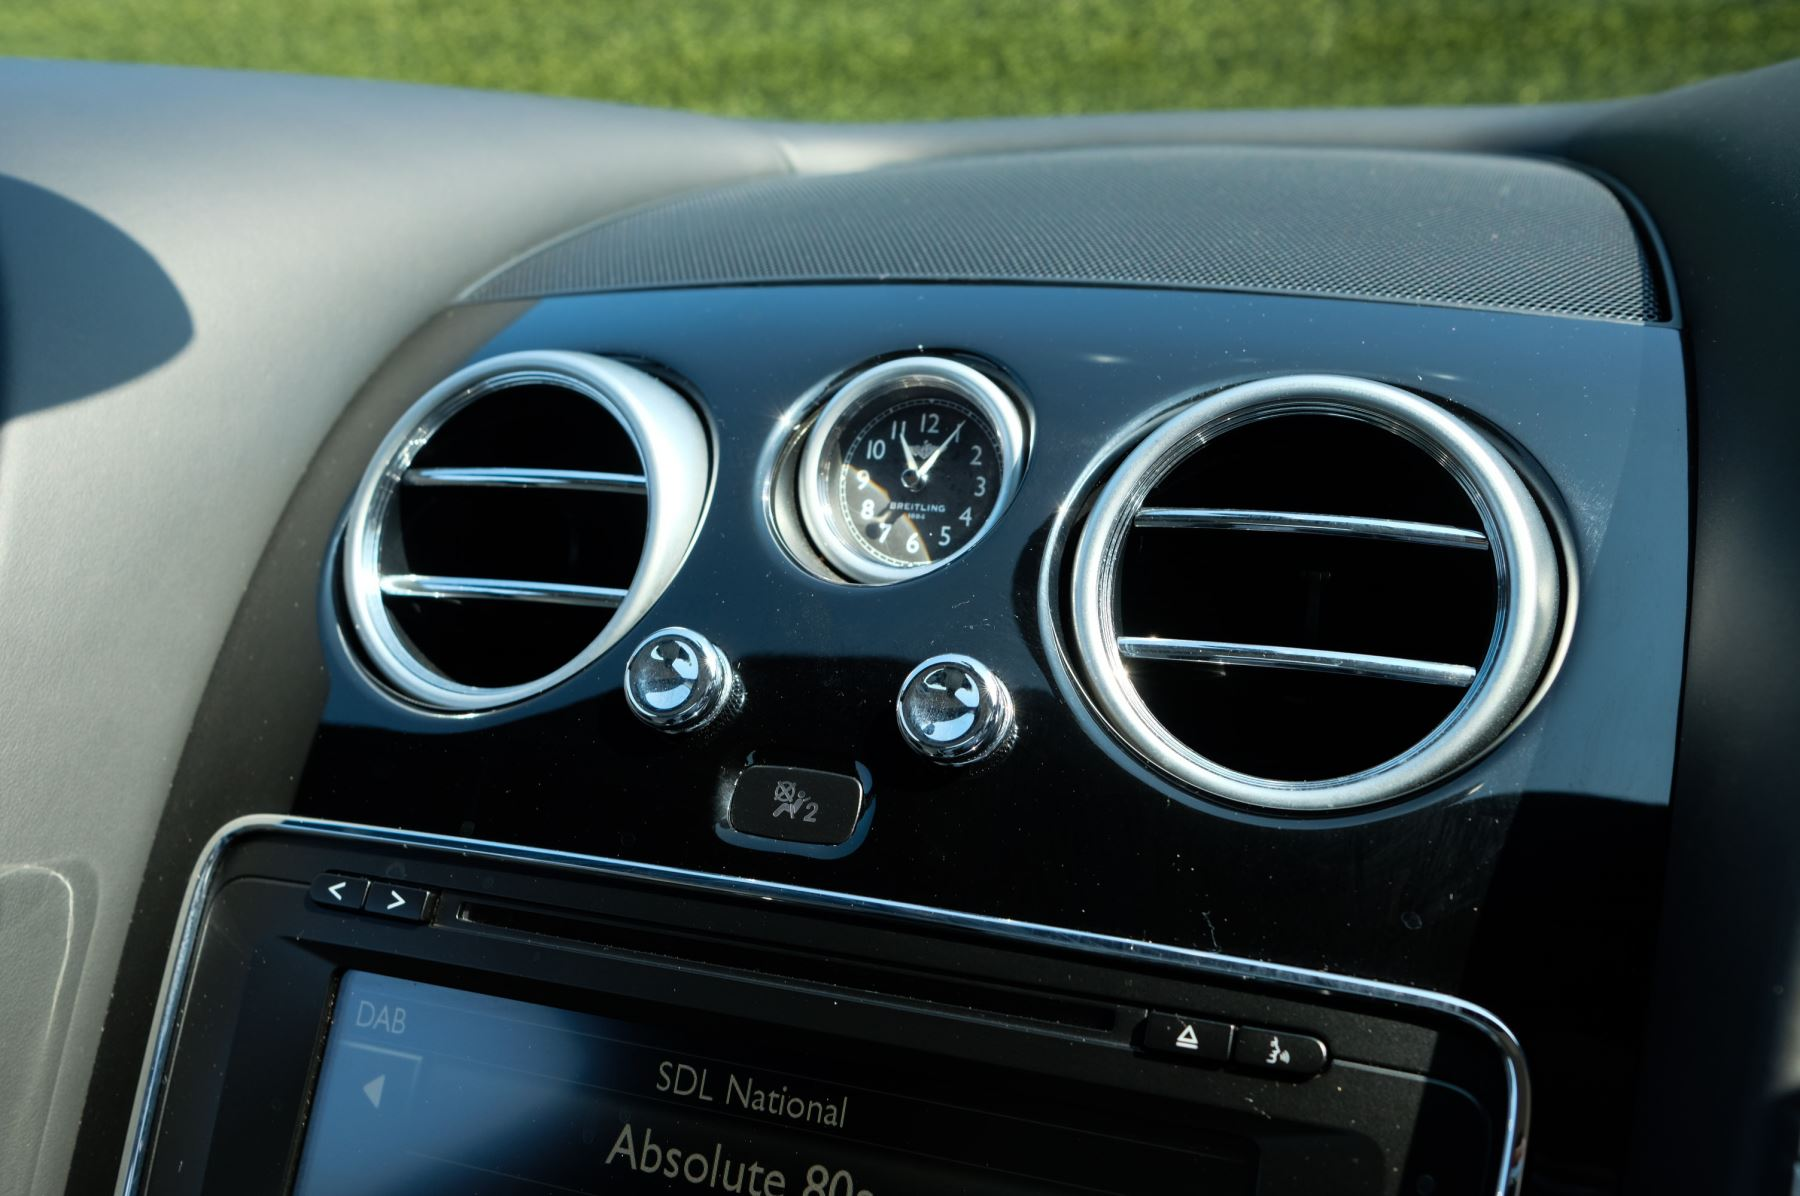 Bentley Continental GTC 4.0 V8 S - Mulliner Driving Specification image 18